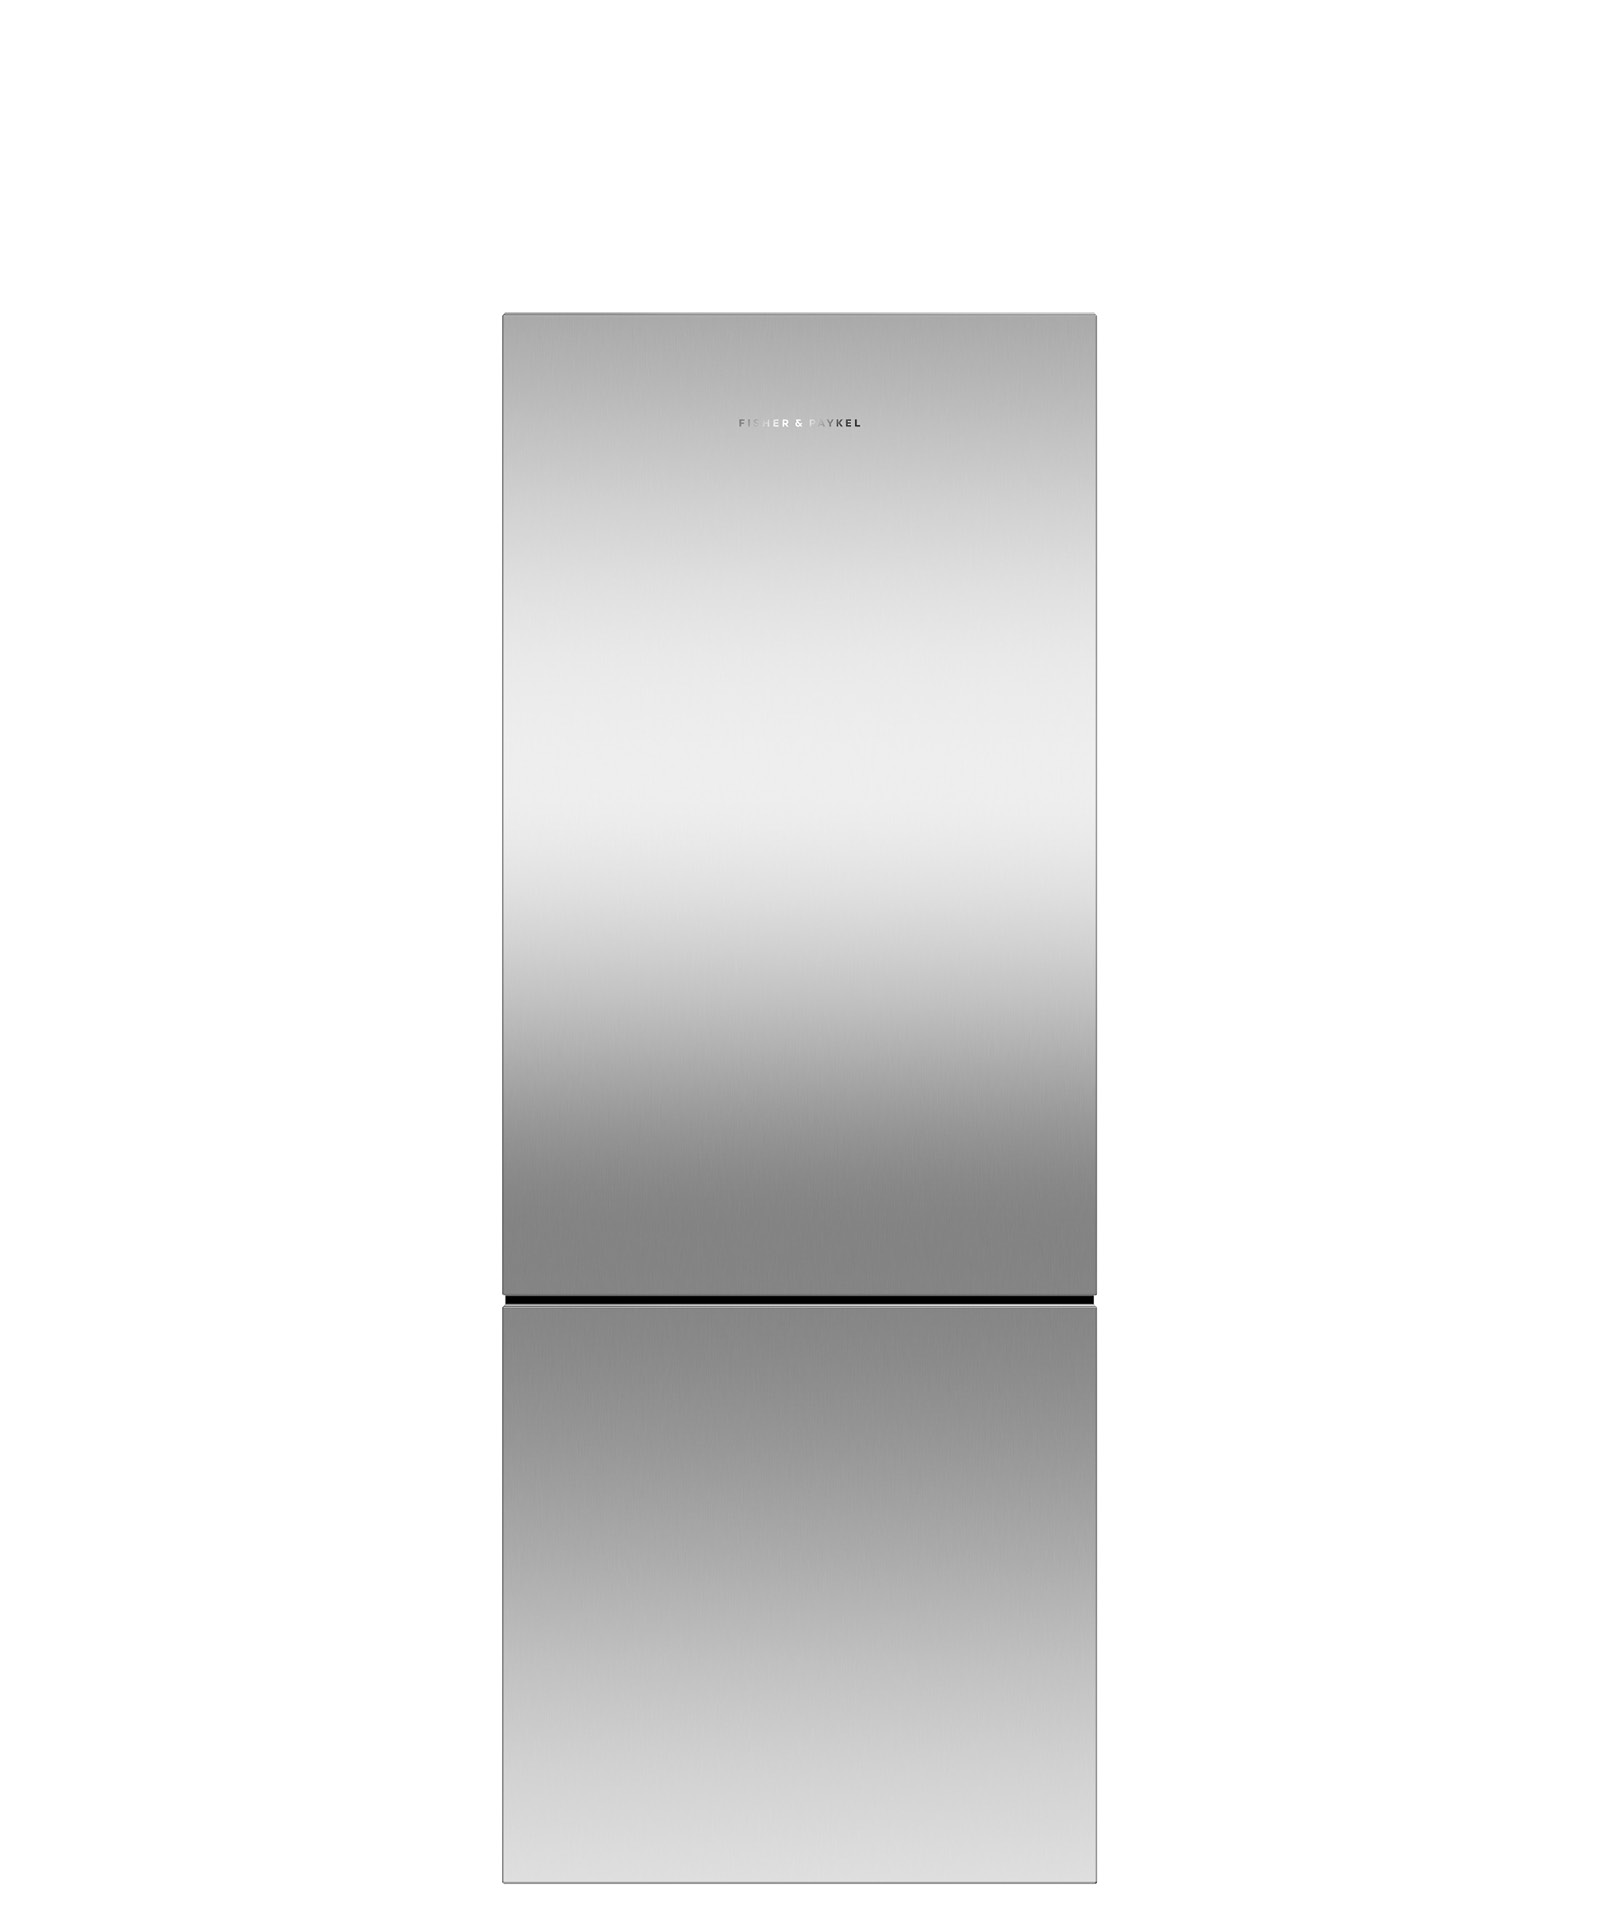 Model: RF135BRPX6_N | Fisher and Paykel Counter Depth Refrigerator 13.5 cu ft